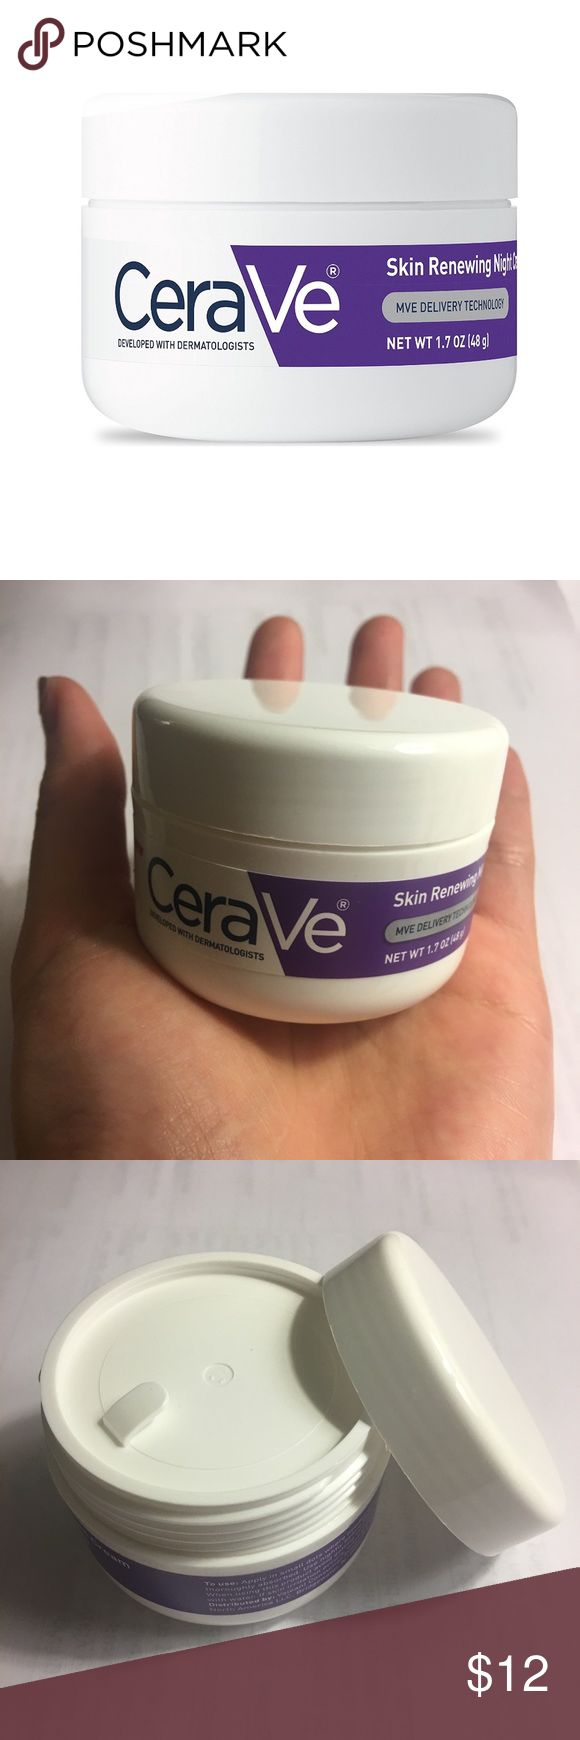 CeraVe Skin Renewing Night Cream 1.7 oz Feature:  With ceramides 1 3 and 6-II Hyaluronic acid to help retain skin's moisture Niacinamide Non-comedogenic Fragrance-free Gentle non-irritating formula.  Condition: brand new without box. Purchased from rite aid received as a gift accidentally threw the box away but I dont need it and havent tried. CeraVe Makeup